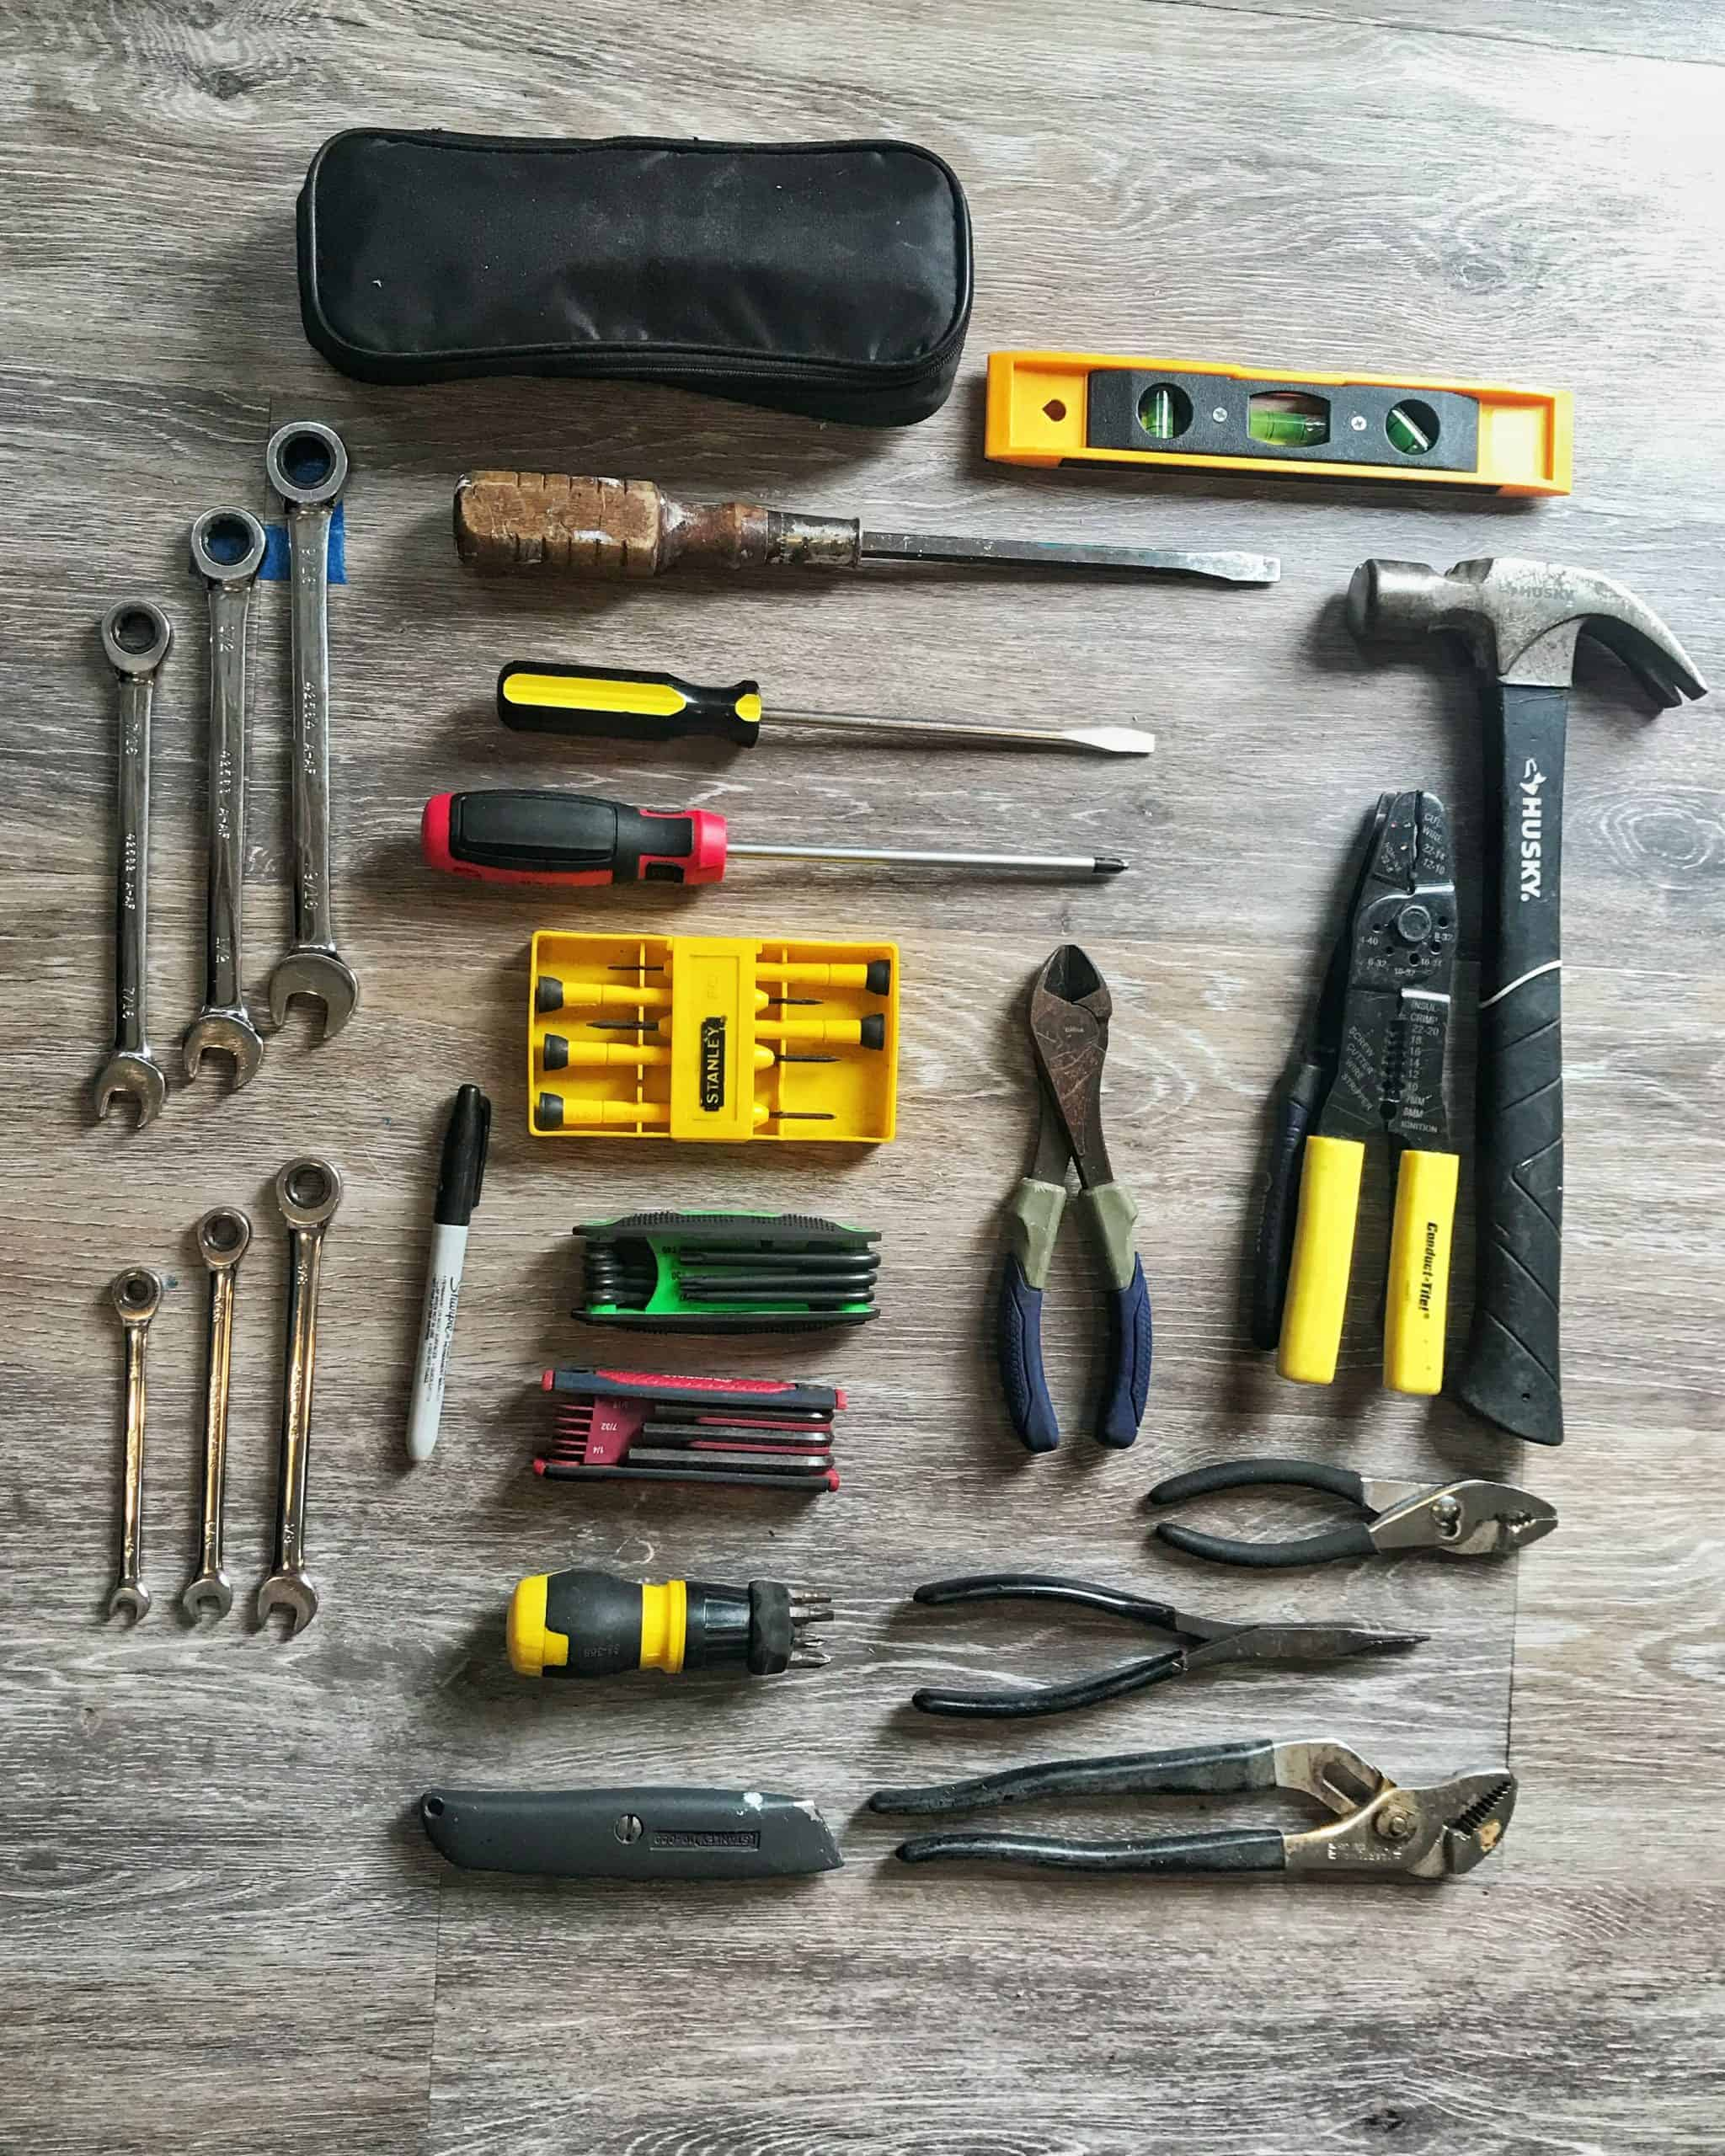 Tool kit laid out